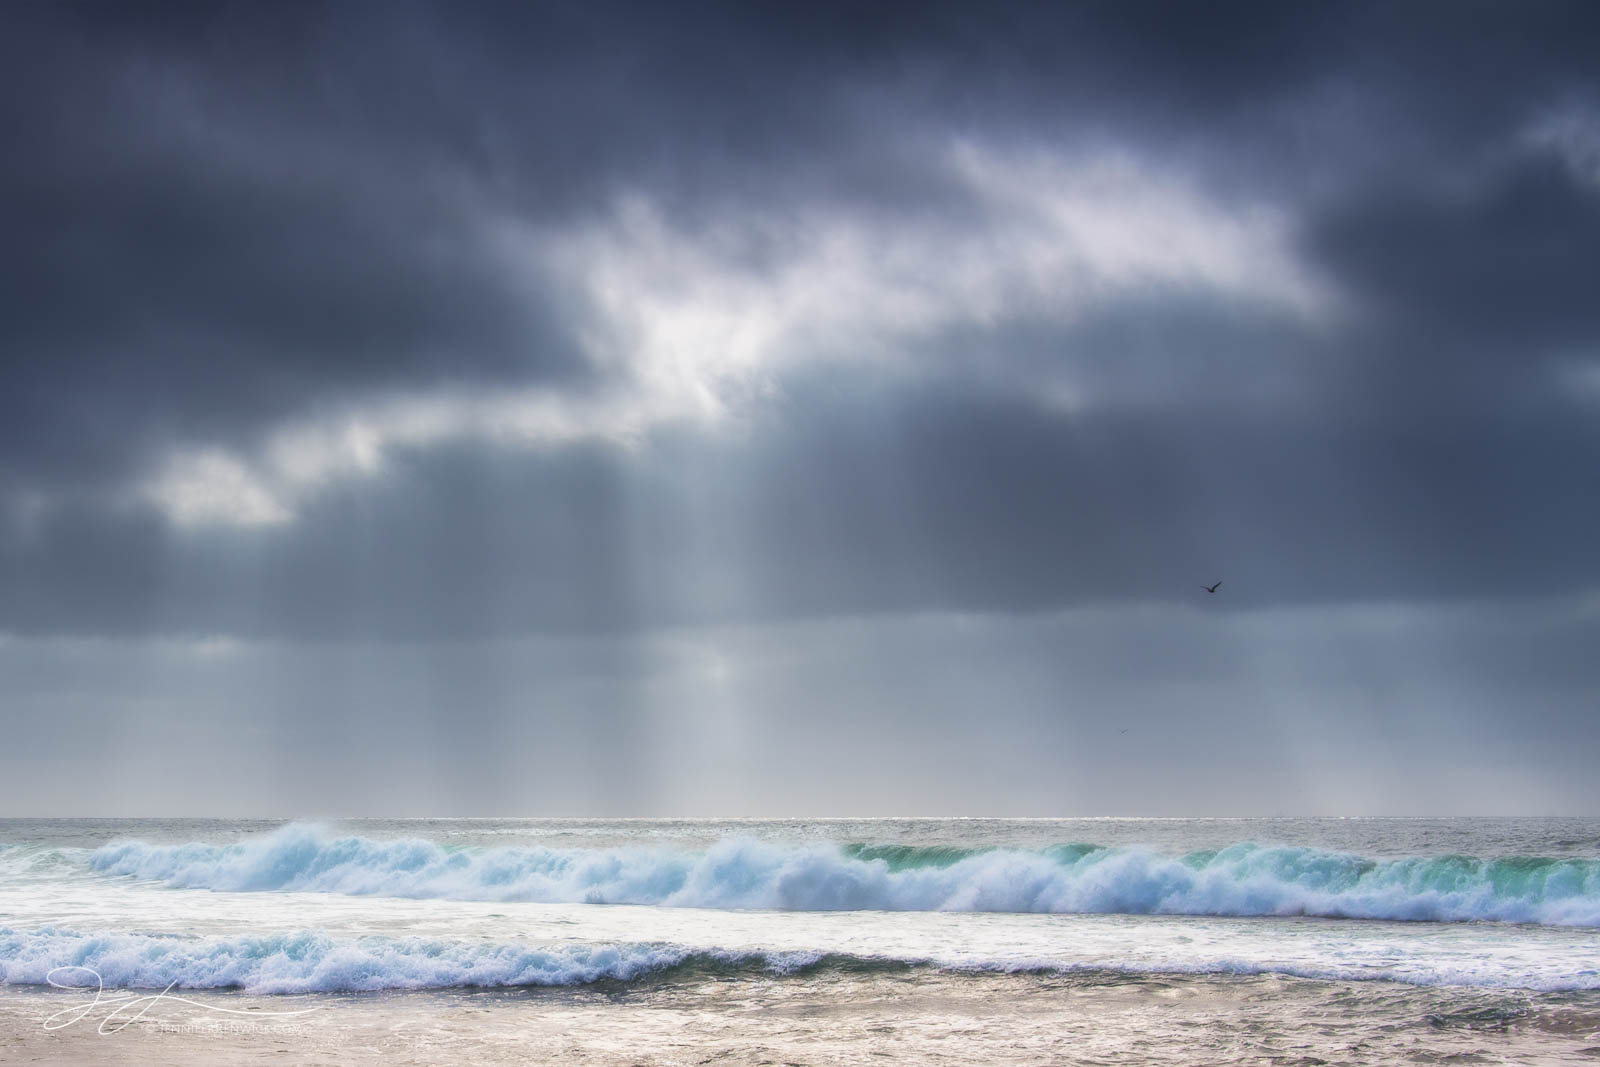 A storm clears as light beams shine down to the ocean near La Jolla, California.